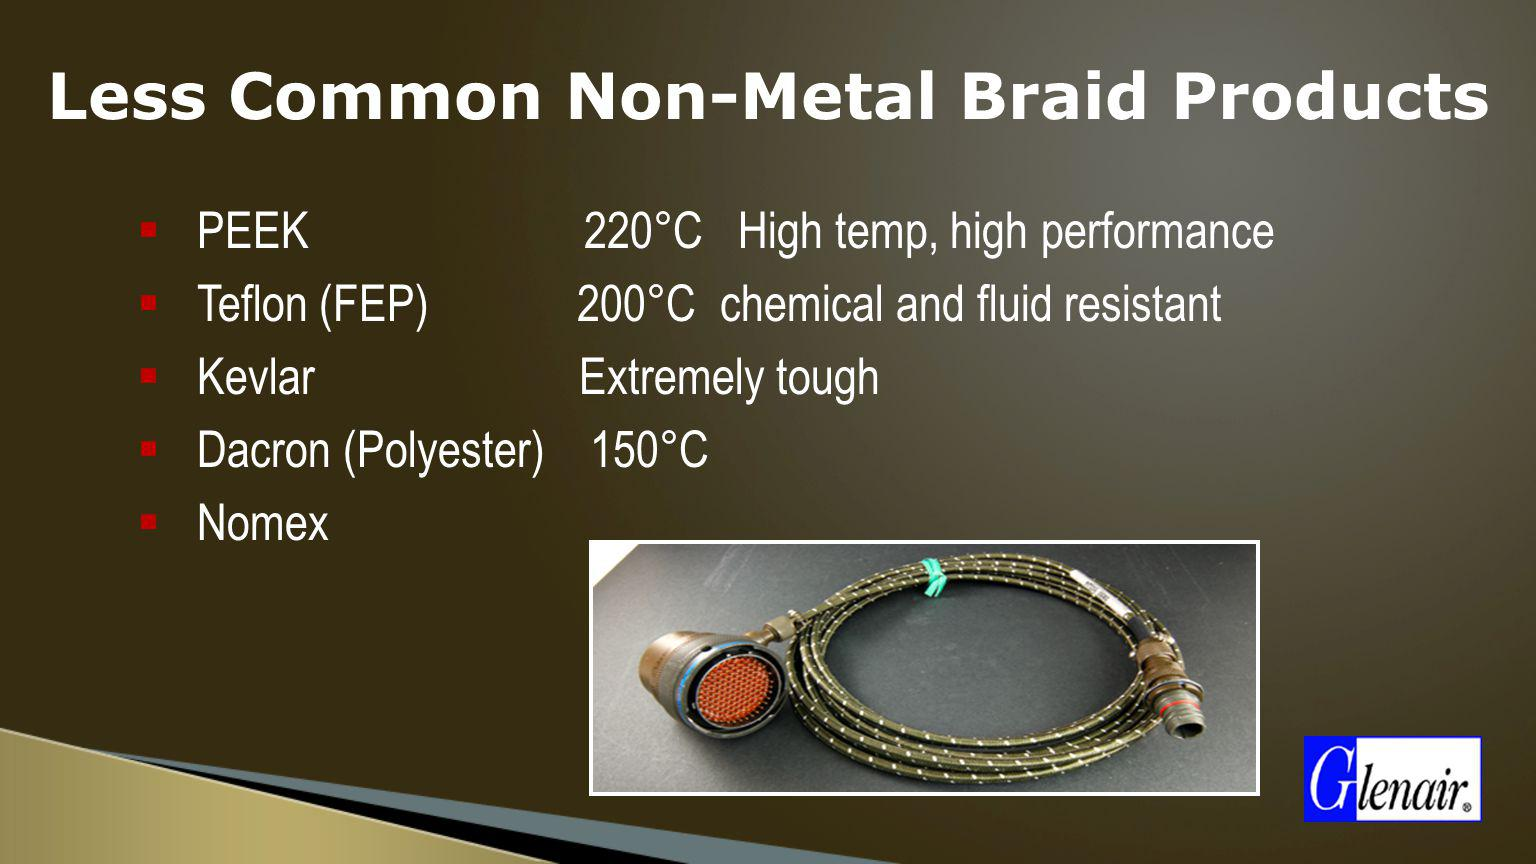 Less Common Non-Metal Braid Products